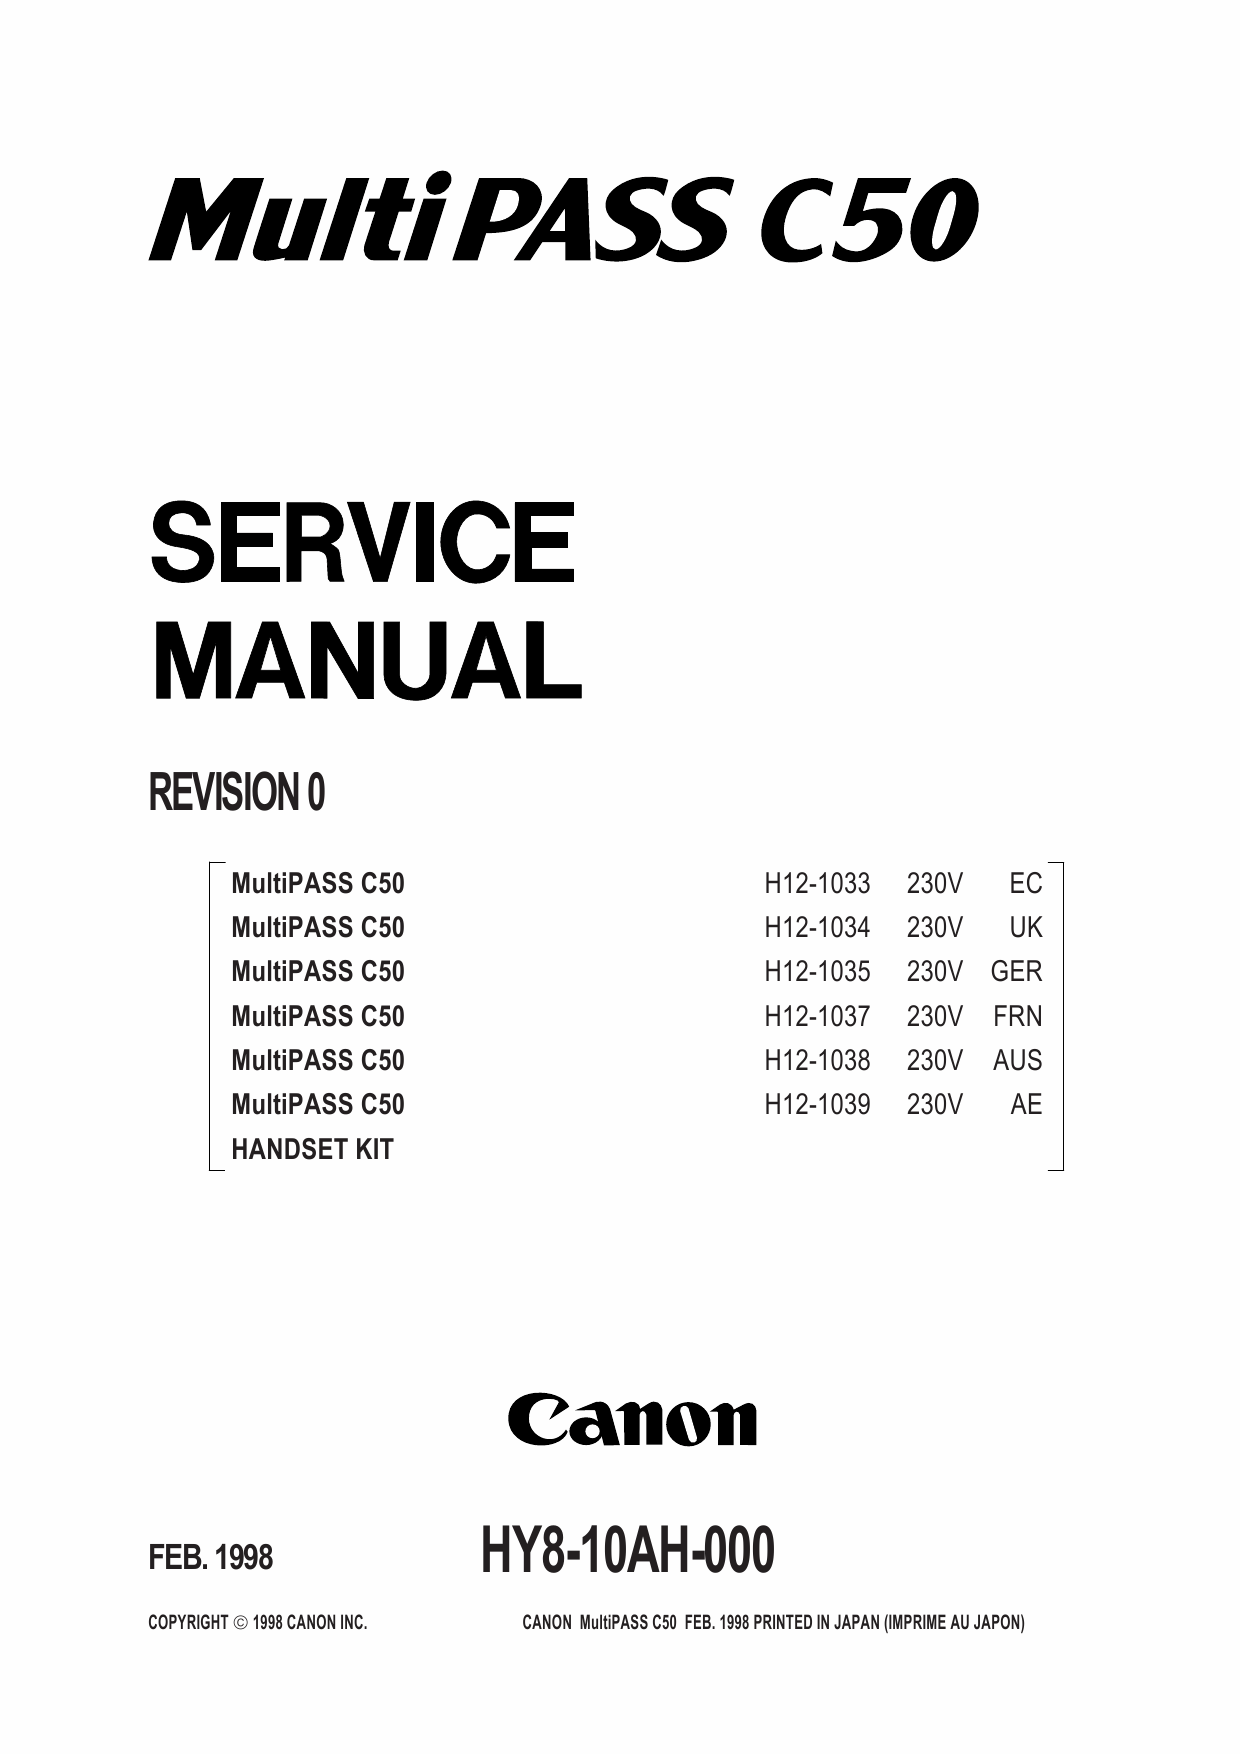 Canon FAX MultiPass-C50 Parts and Service Manual-1